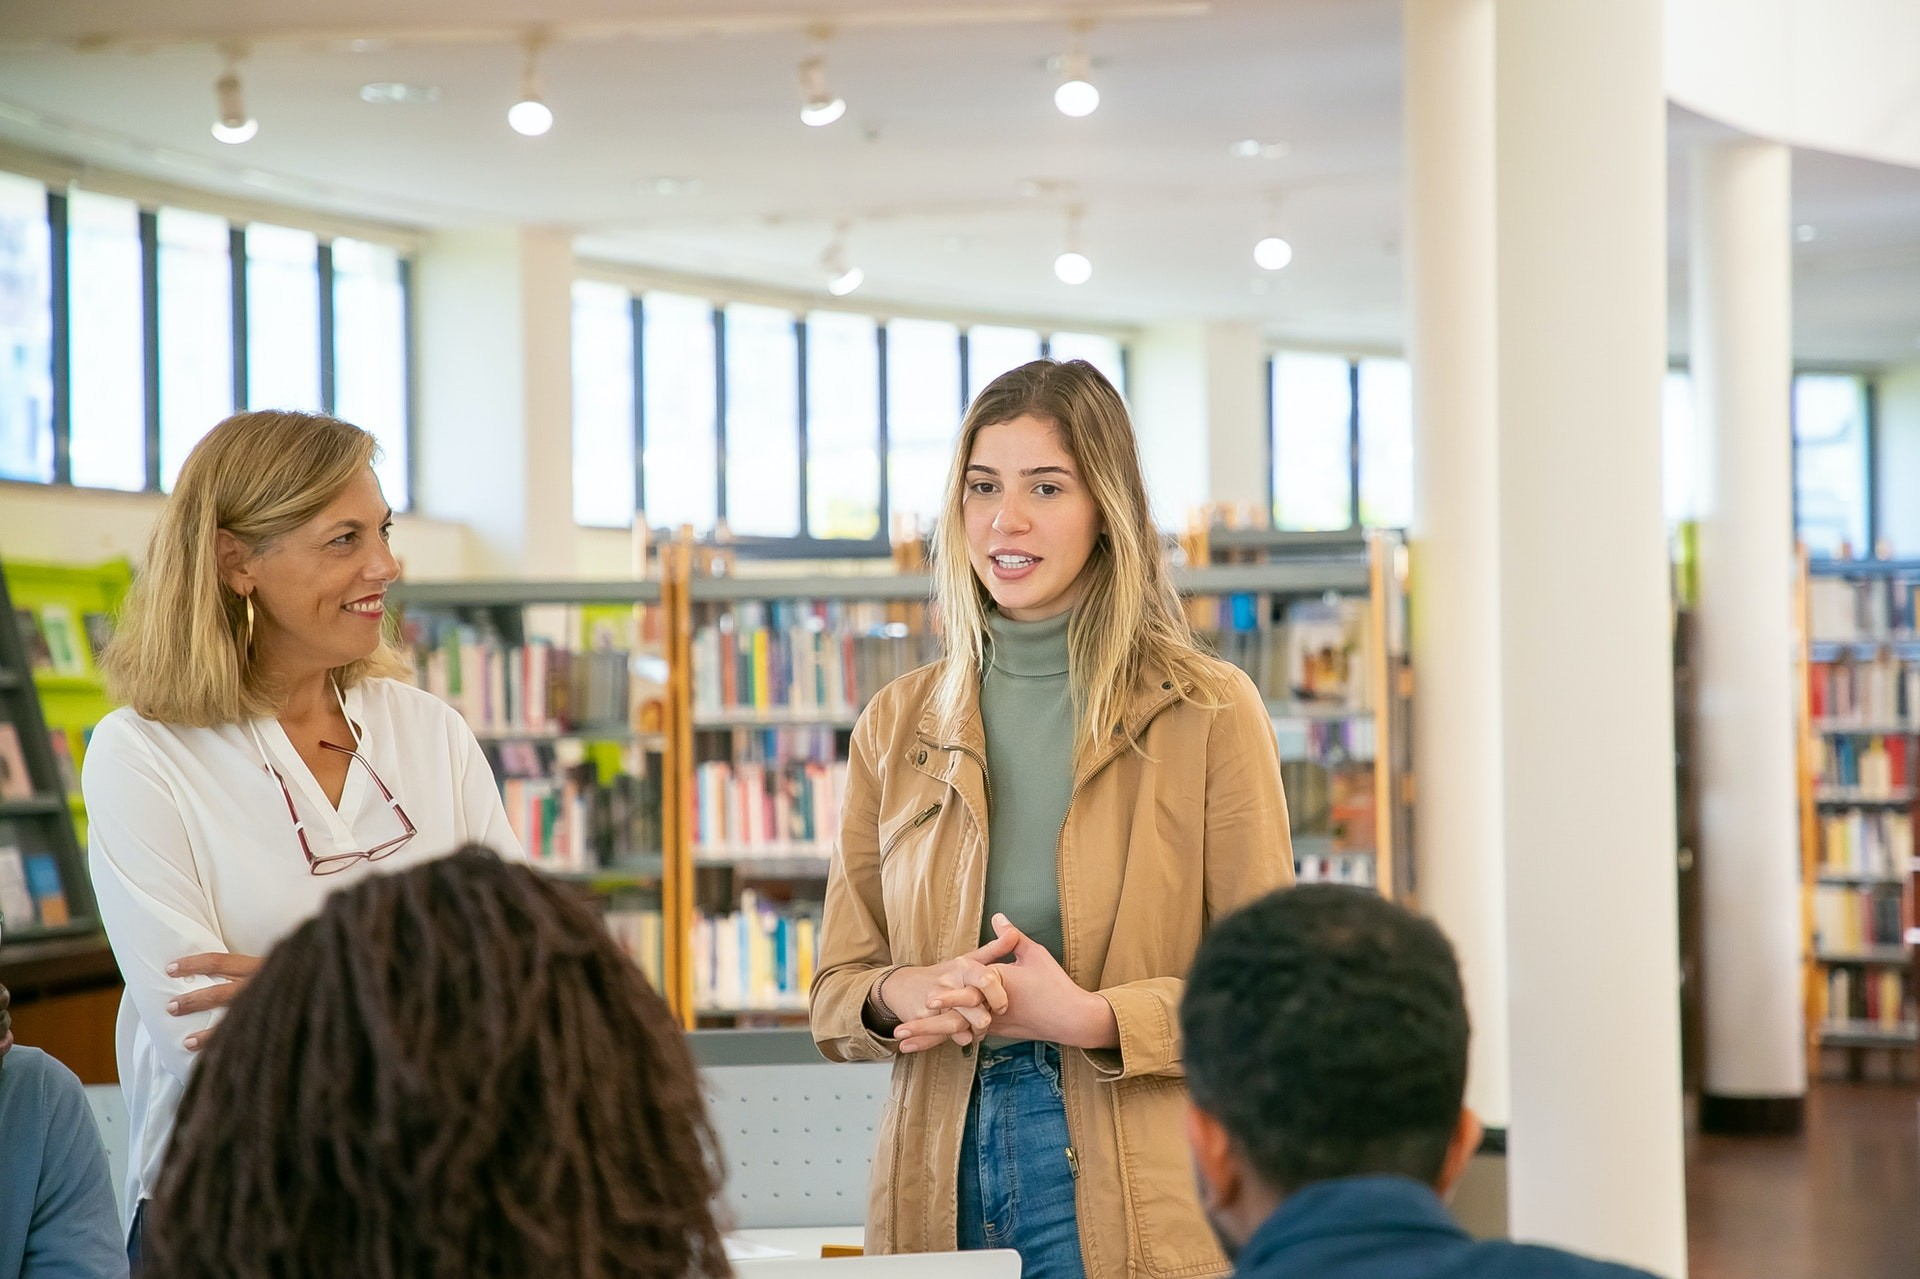 A female student stands in a library and gives a presentation to fellow classmates.